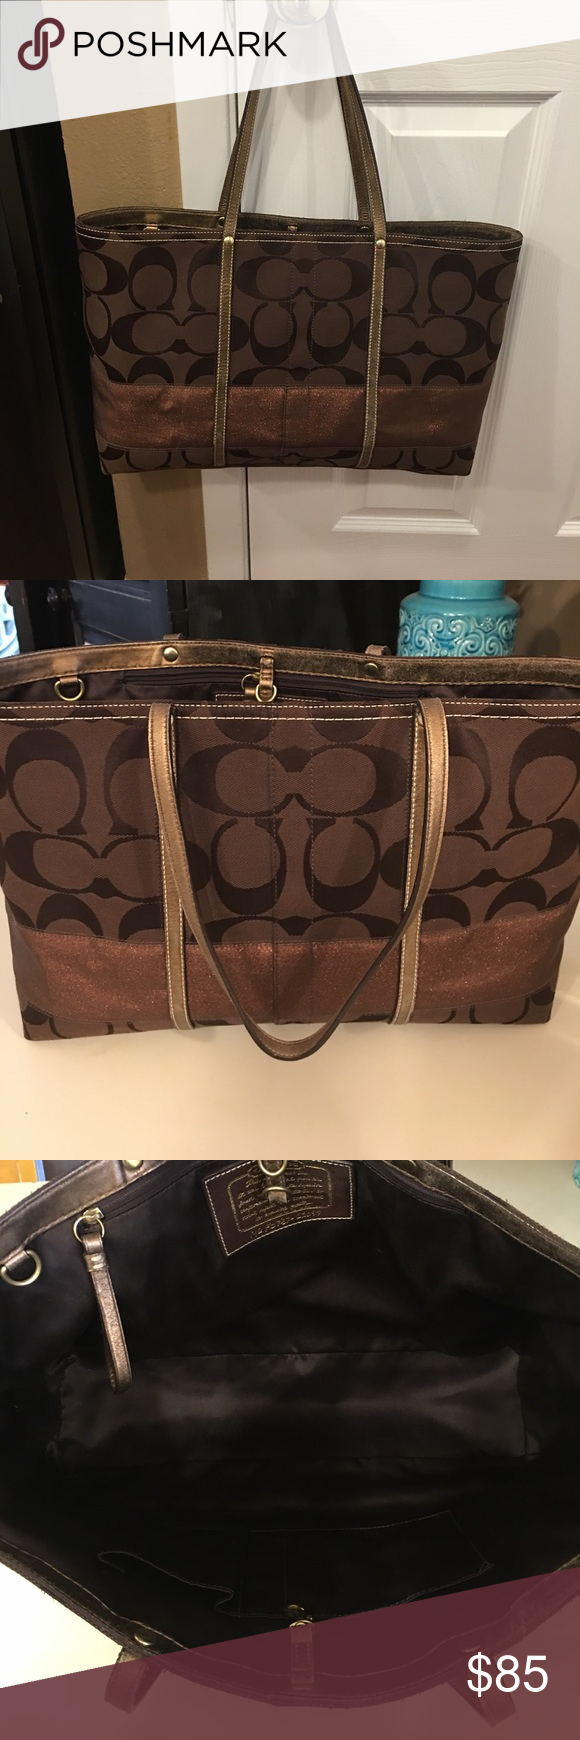 Large Authentic Signature Coach Tote Large Authentic Signature Coach tote. Pre-owned. Excellent condition. Chocolate brown with Gold leather handles and accent band around top. Sparkle copper band around middle. Very clean. No fraying. Zipper pocket inside as well as two side pockets. Measures 17 x 10 1/2 Coach Bags Totes